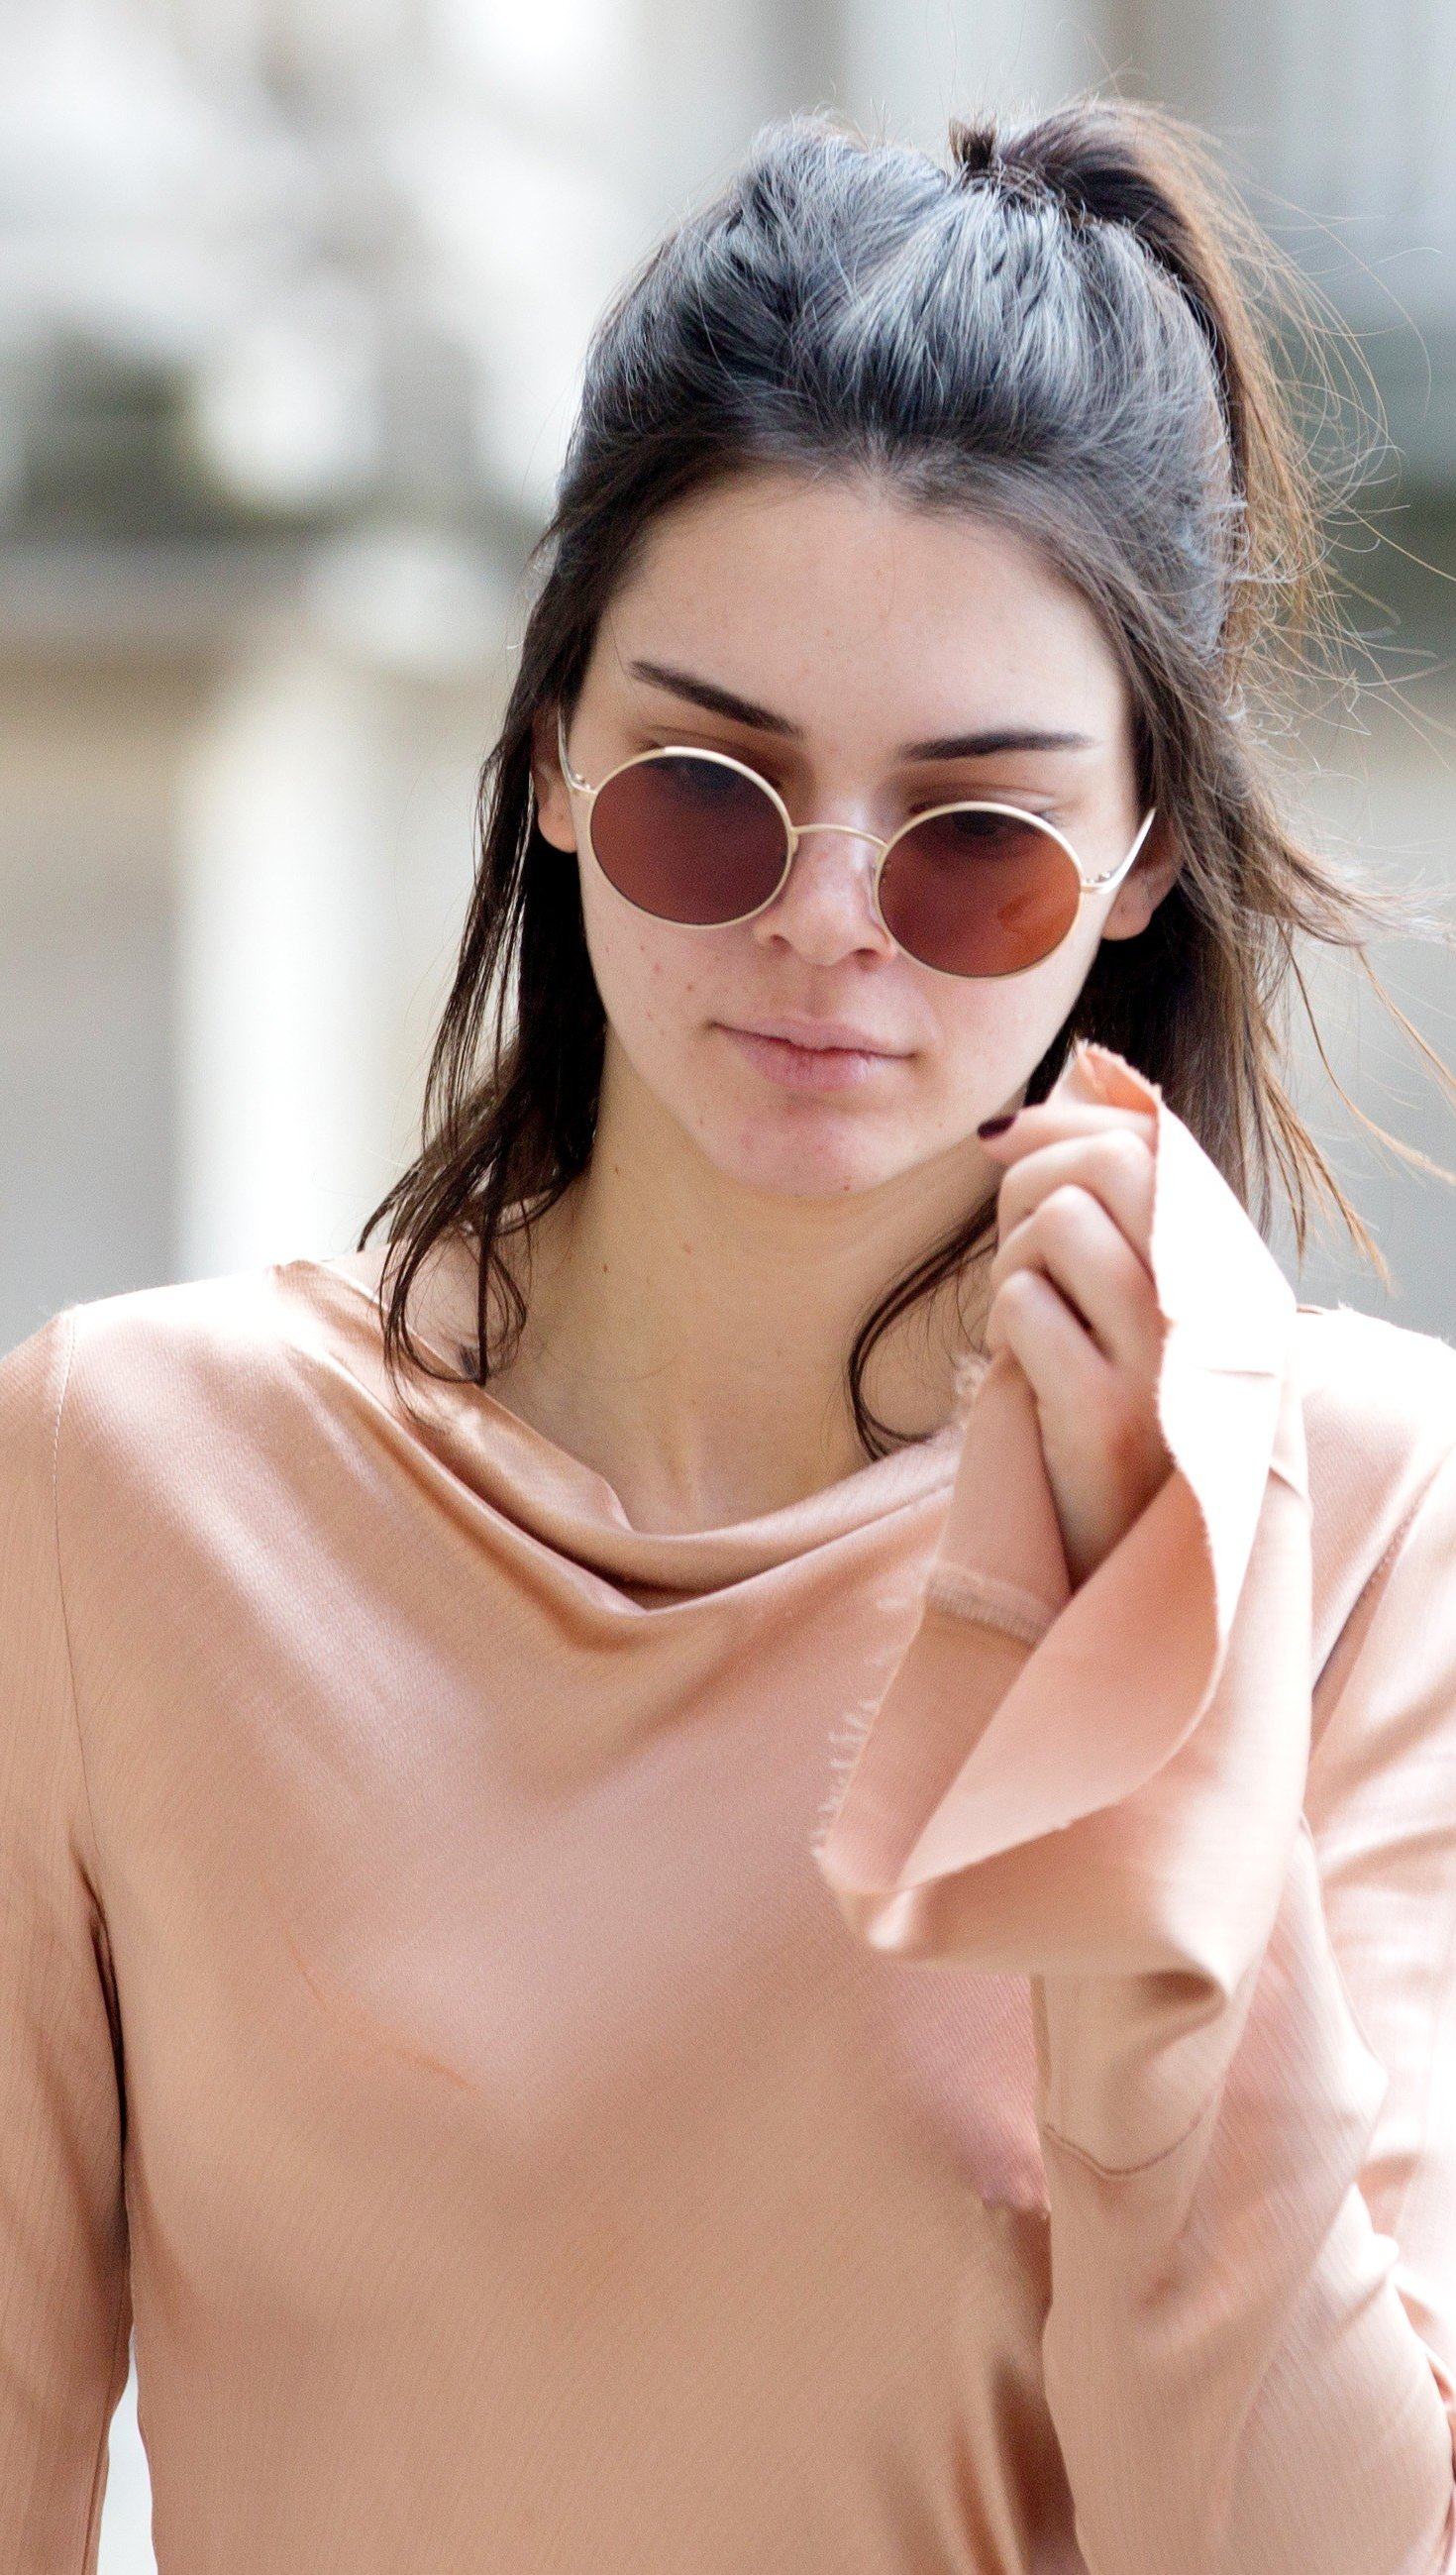 Wallpaper Kendall Jenner wearing sunglasses Vertical